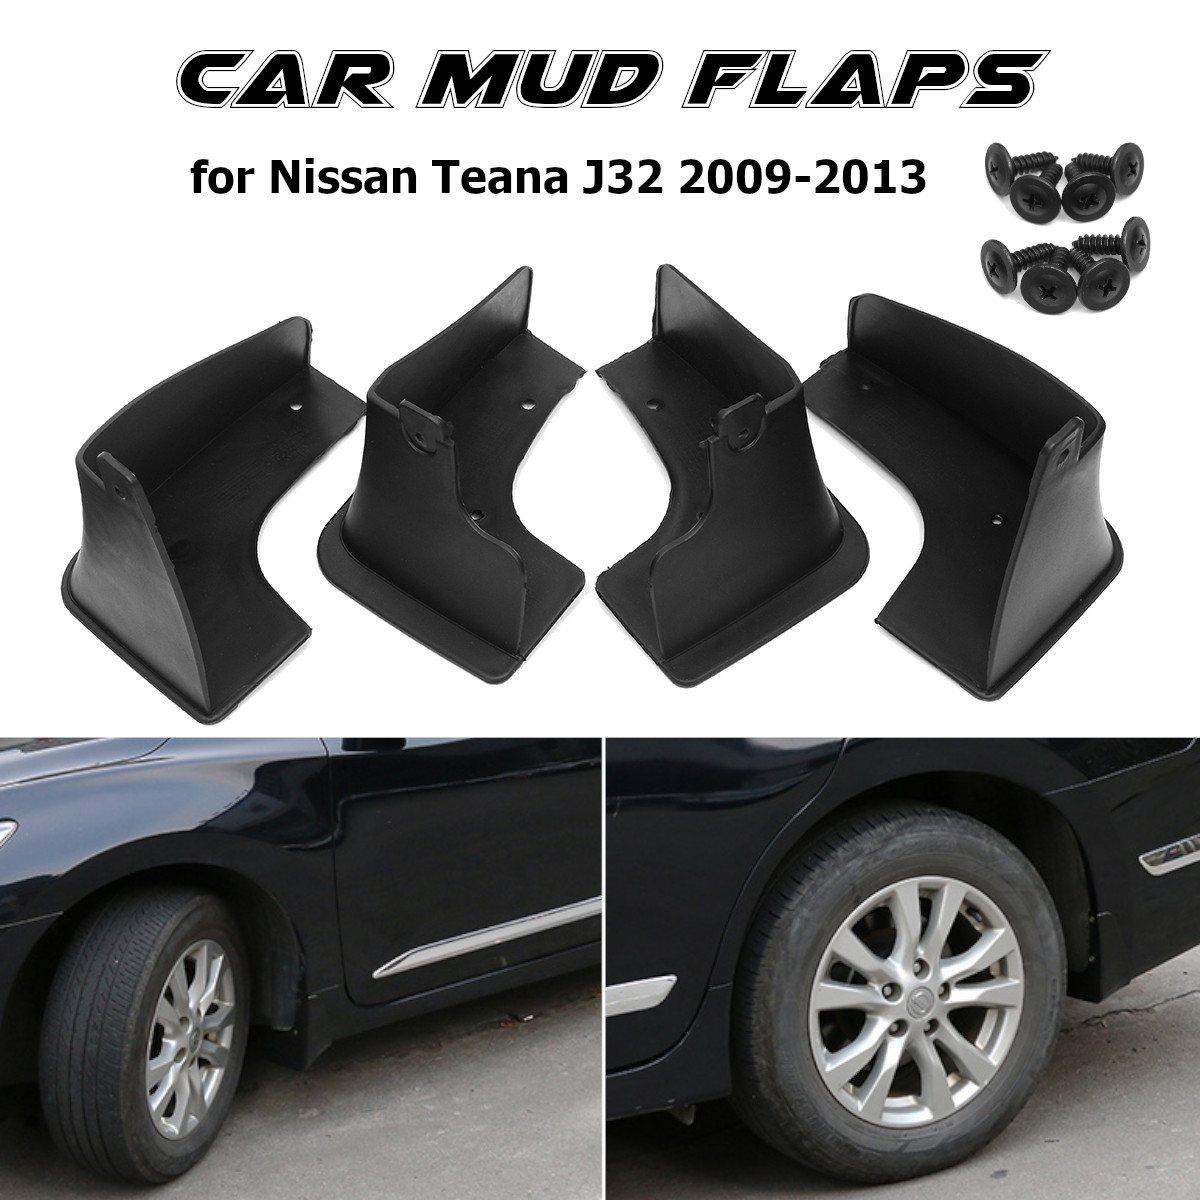 Car Mud Flap For Nissan Maxima(AU) Teana J32 2008 2009 2010 2011 2012 2013 Fender Mud Flap Splash Guards Mudguards image